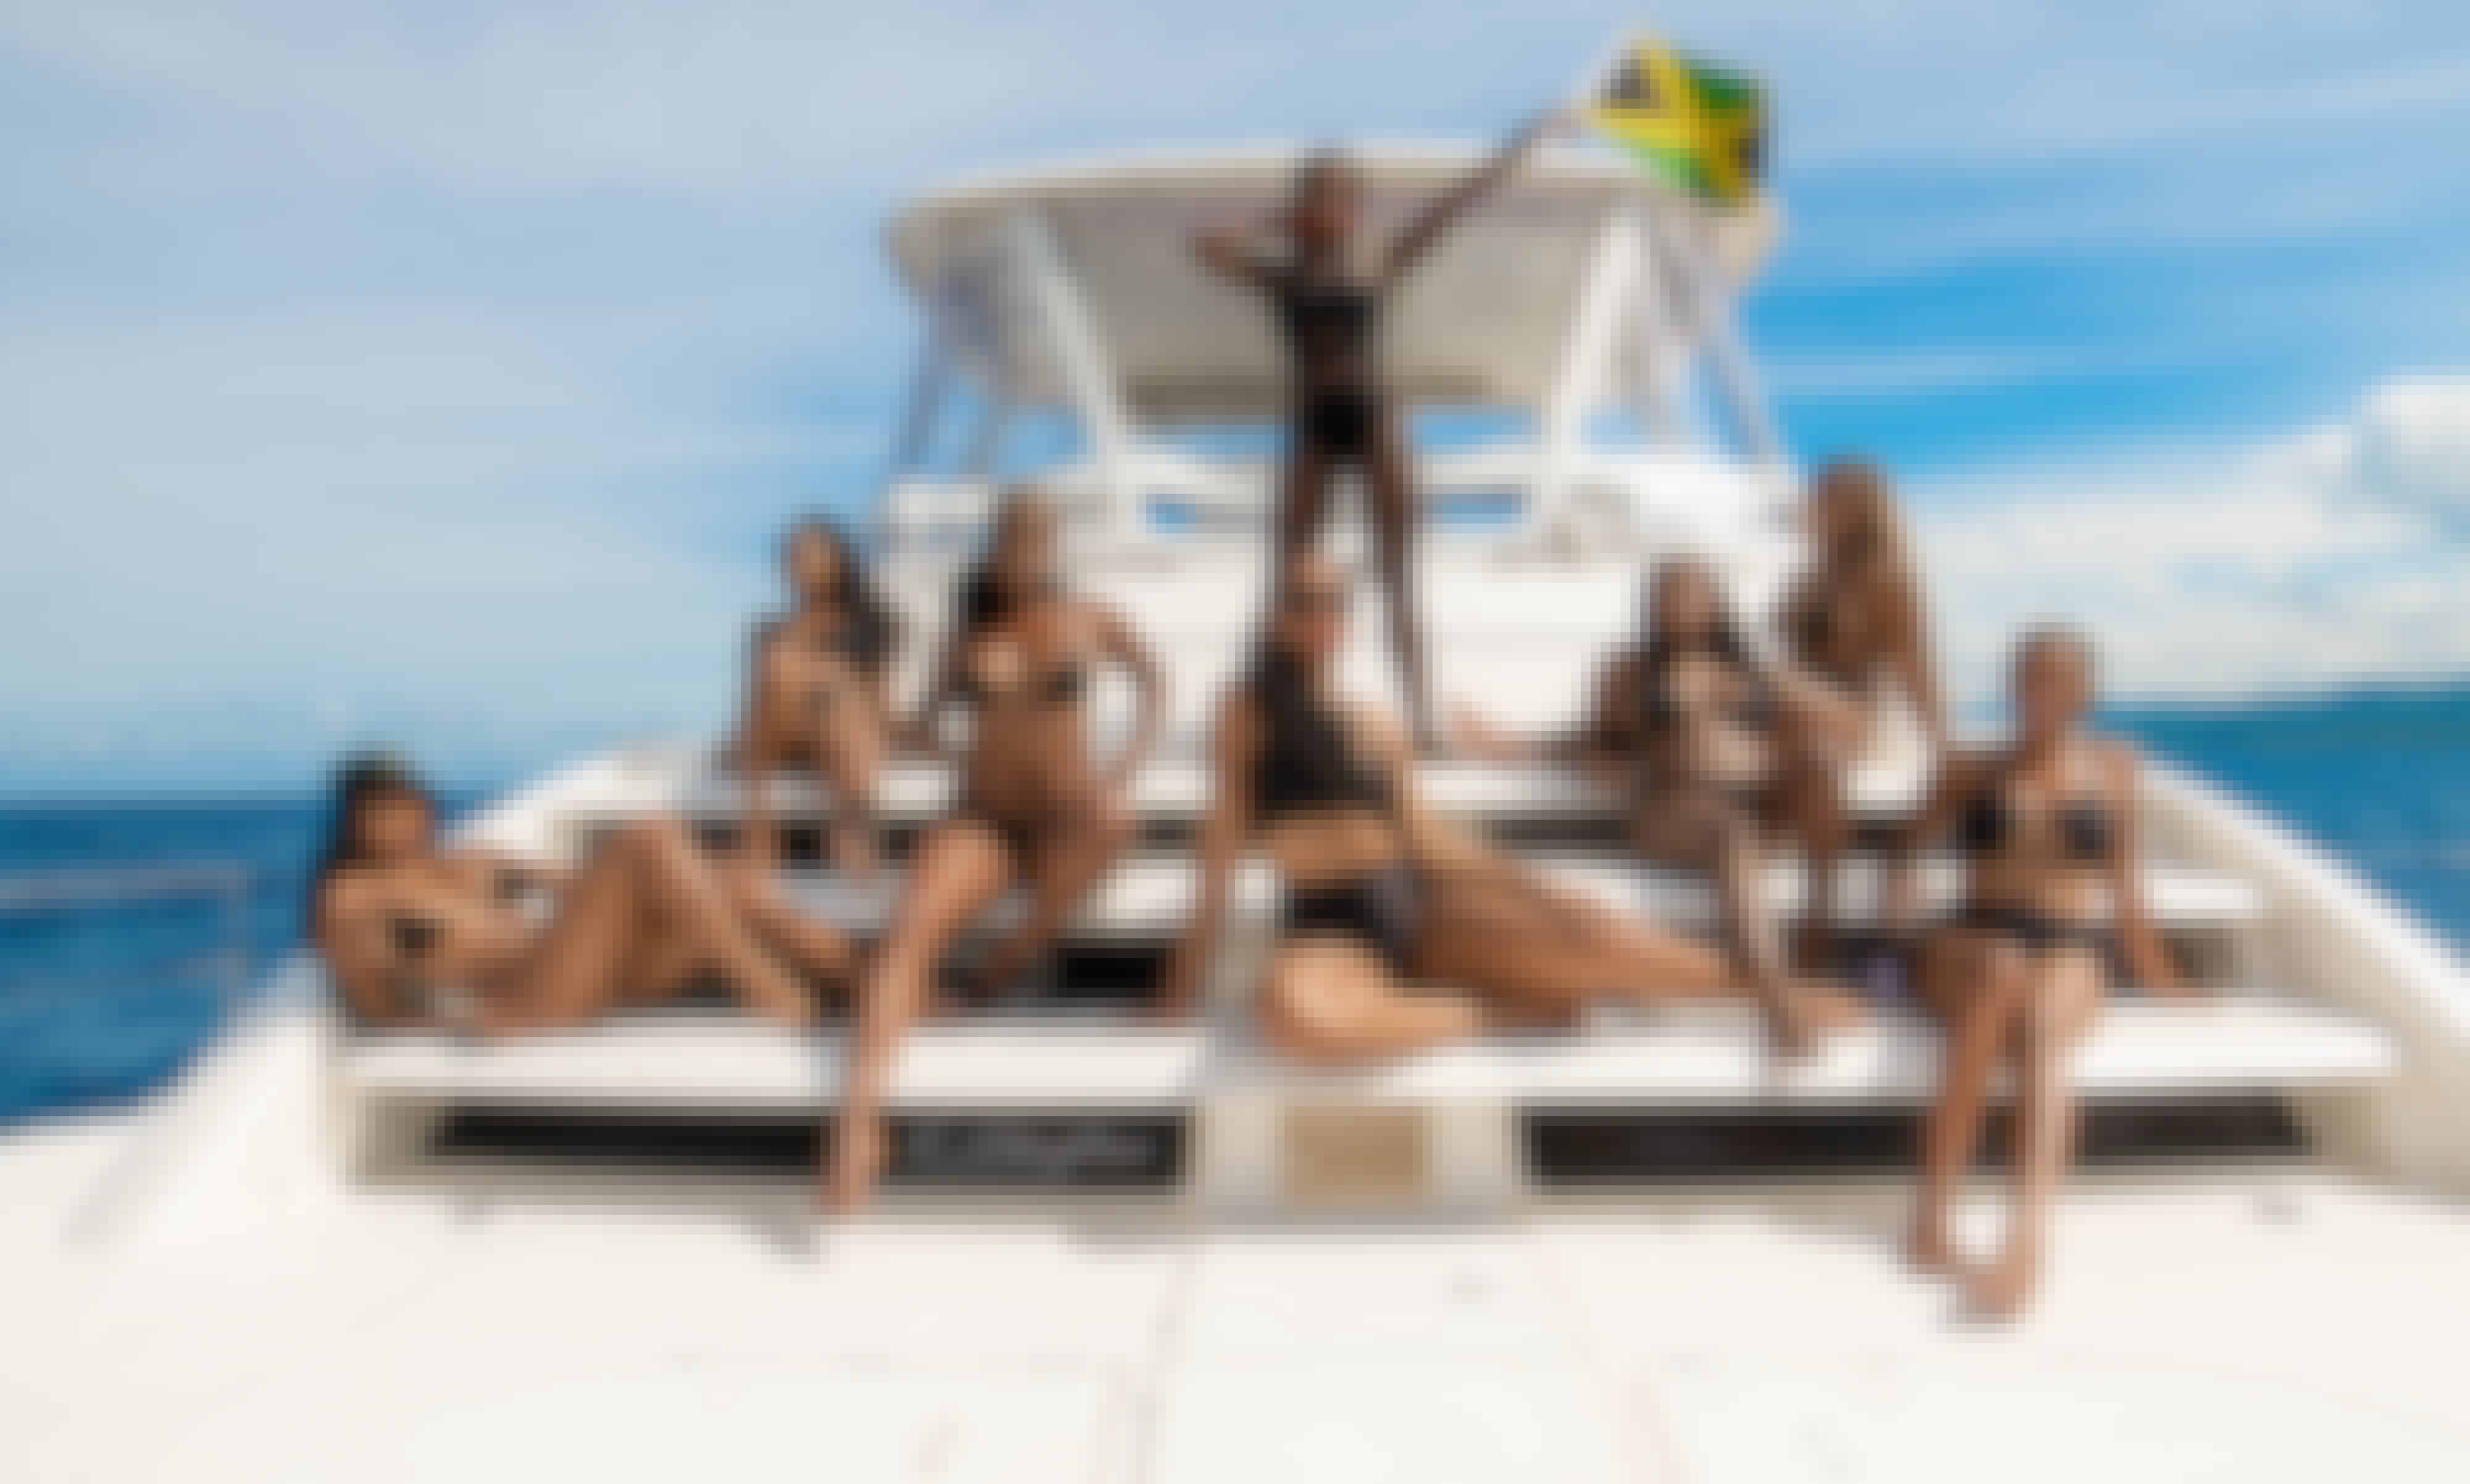 All inclusive private boat tour of Montego Bay - Drinks, Snacks and DJ included!